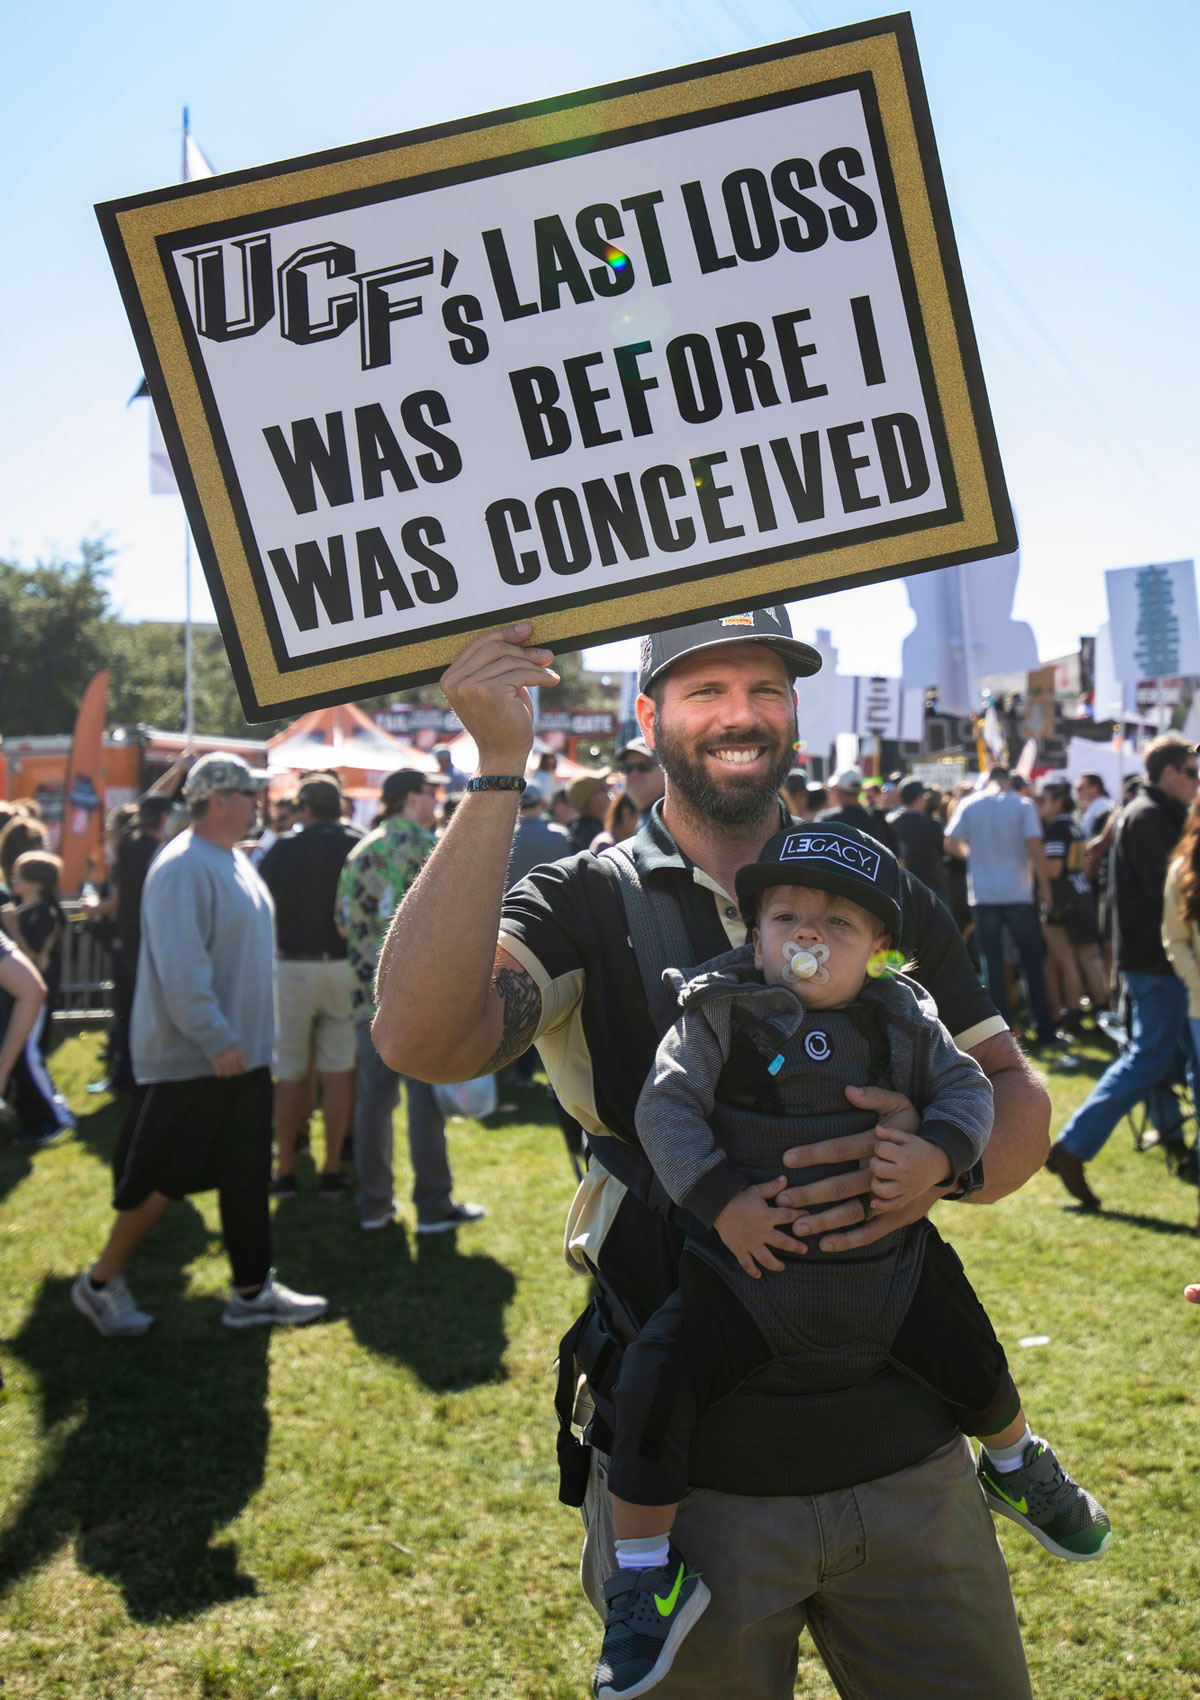 """Man holding a baby with a sign that read """"UCF's last loss was before I was conceived"""""""